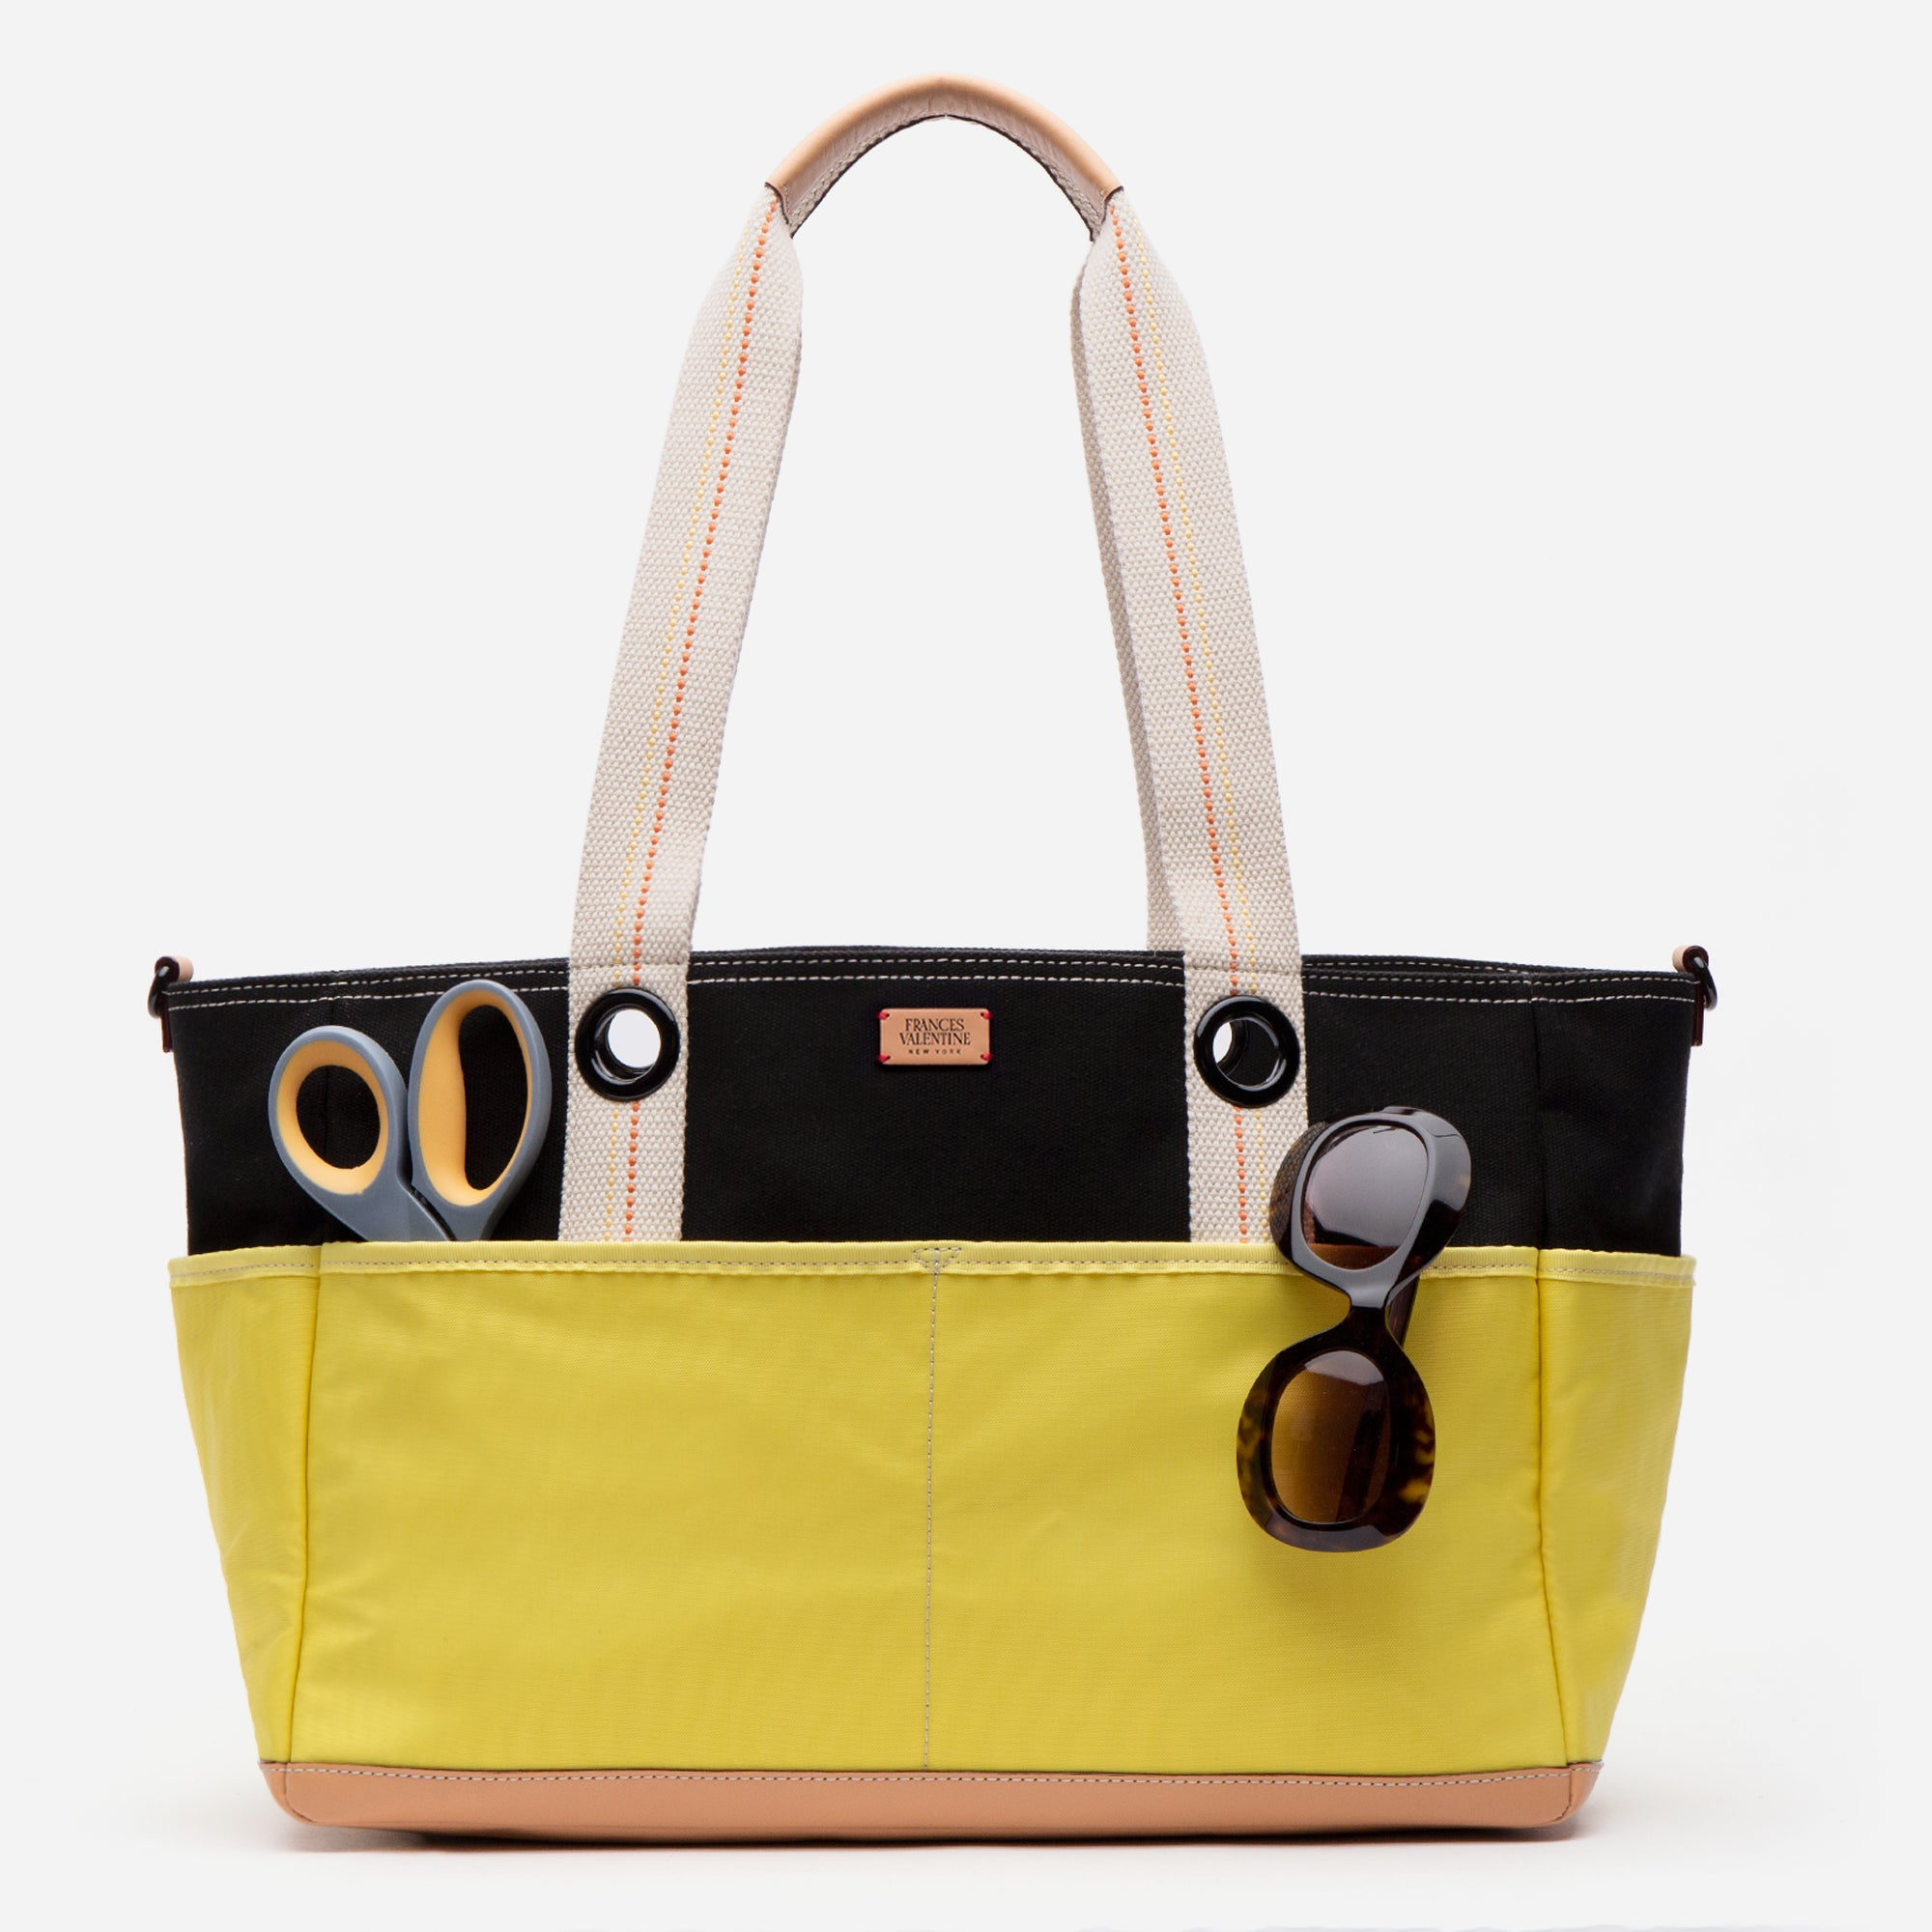 Gardening Canvas Tote Black Yellow